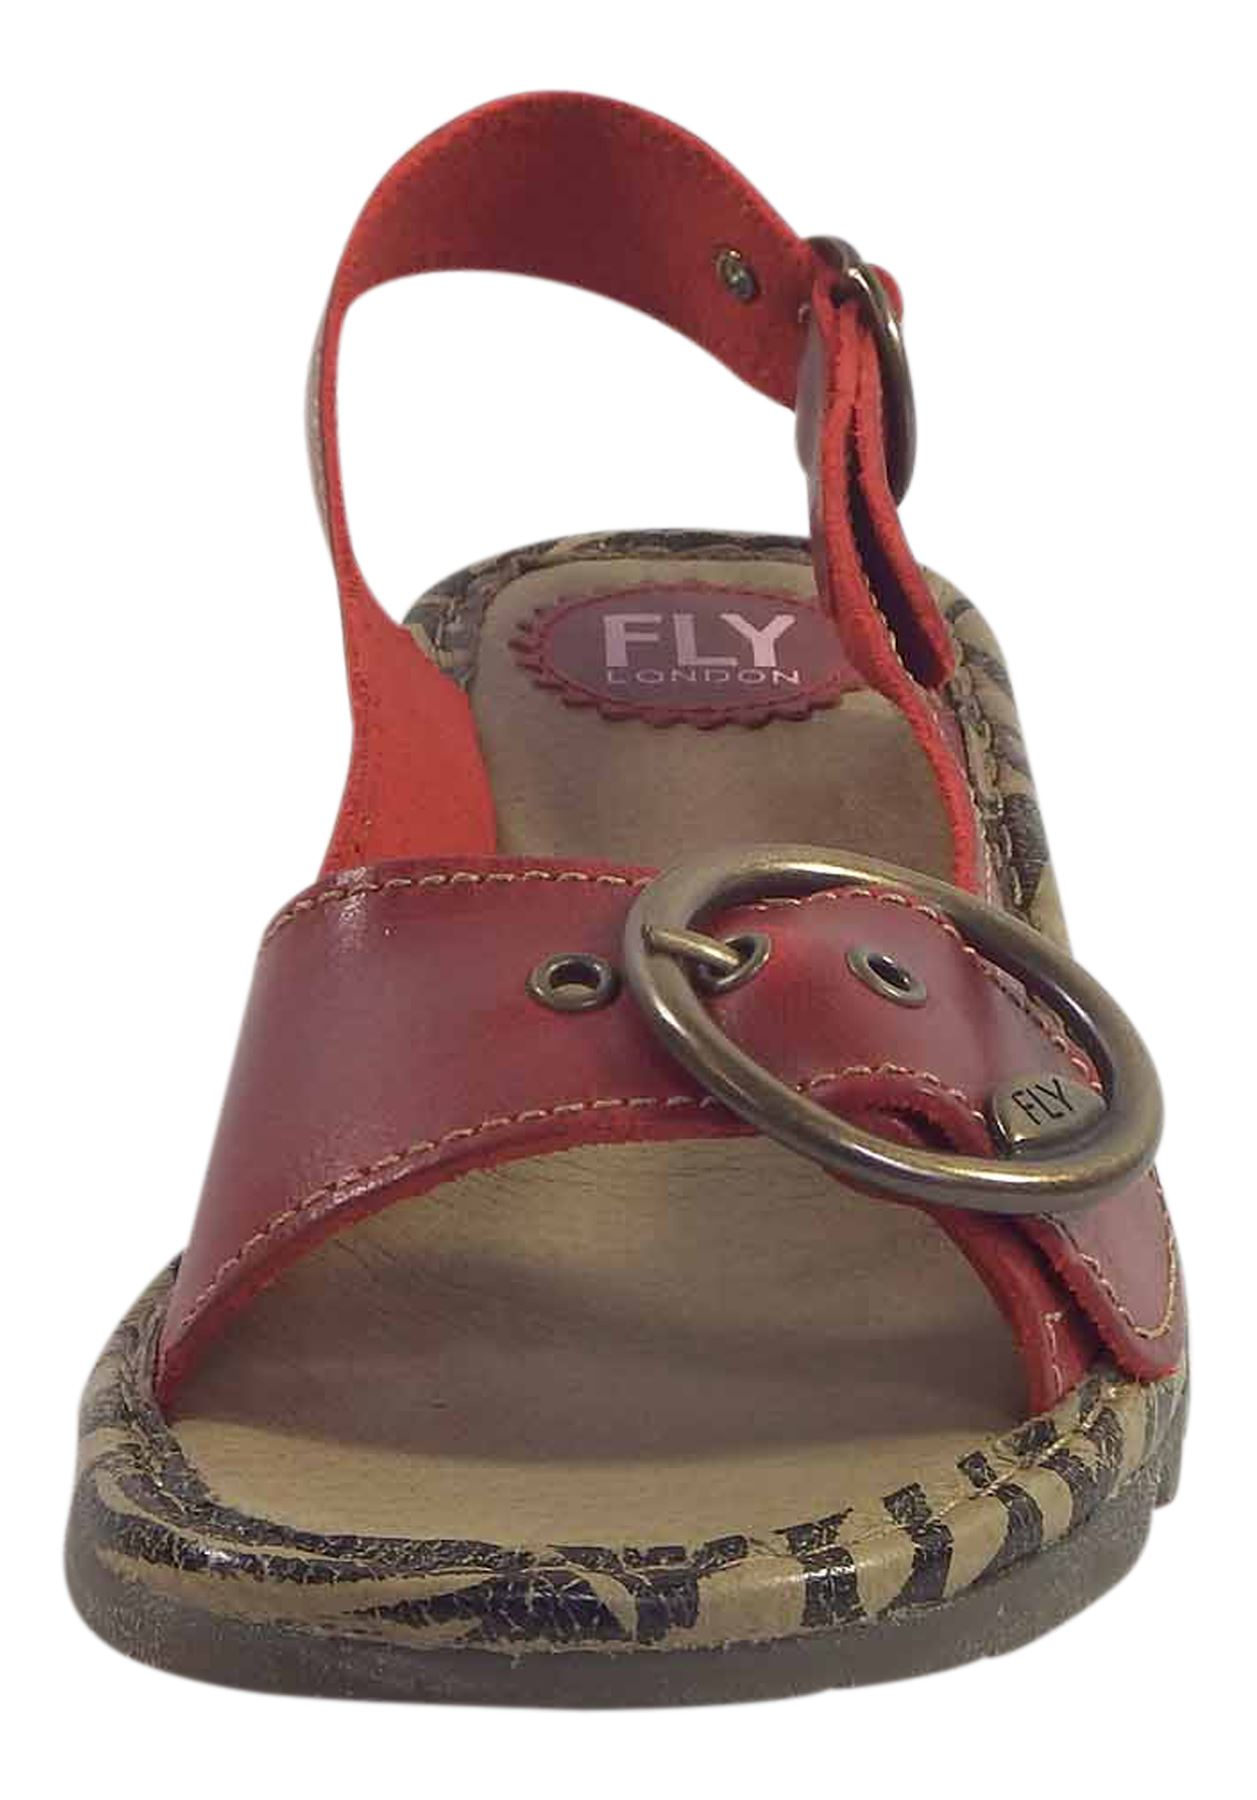 Fly-London-Ladies-TRAM723FLY-Lo-Wedge-Slingback-Summer-Sandals-Leather thumbnail 61